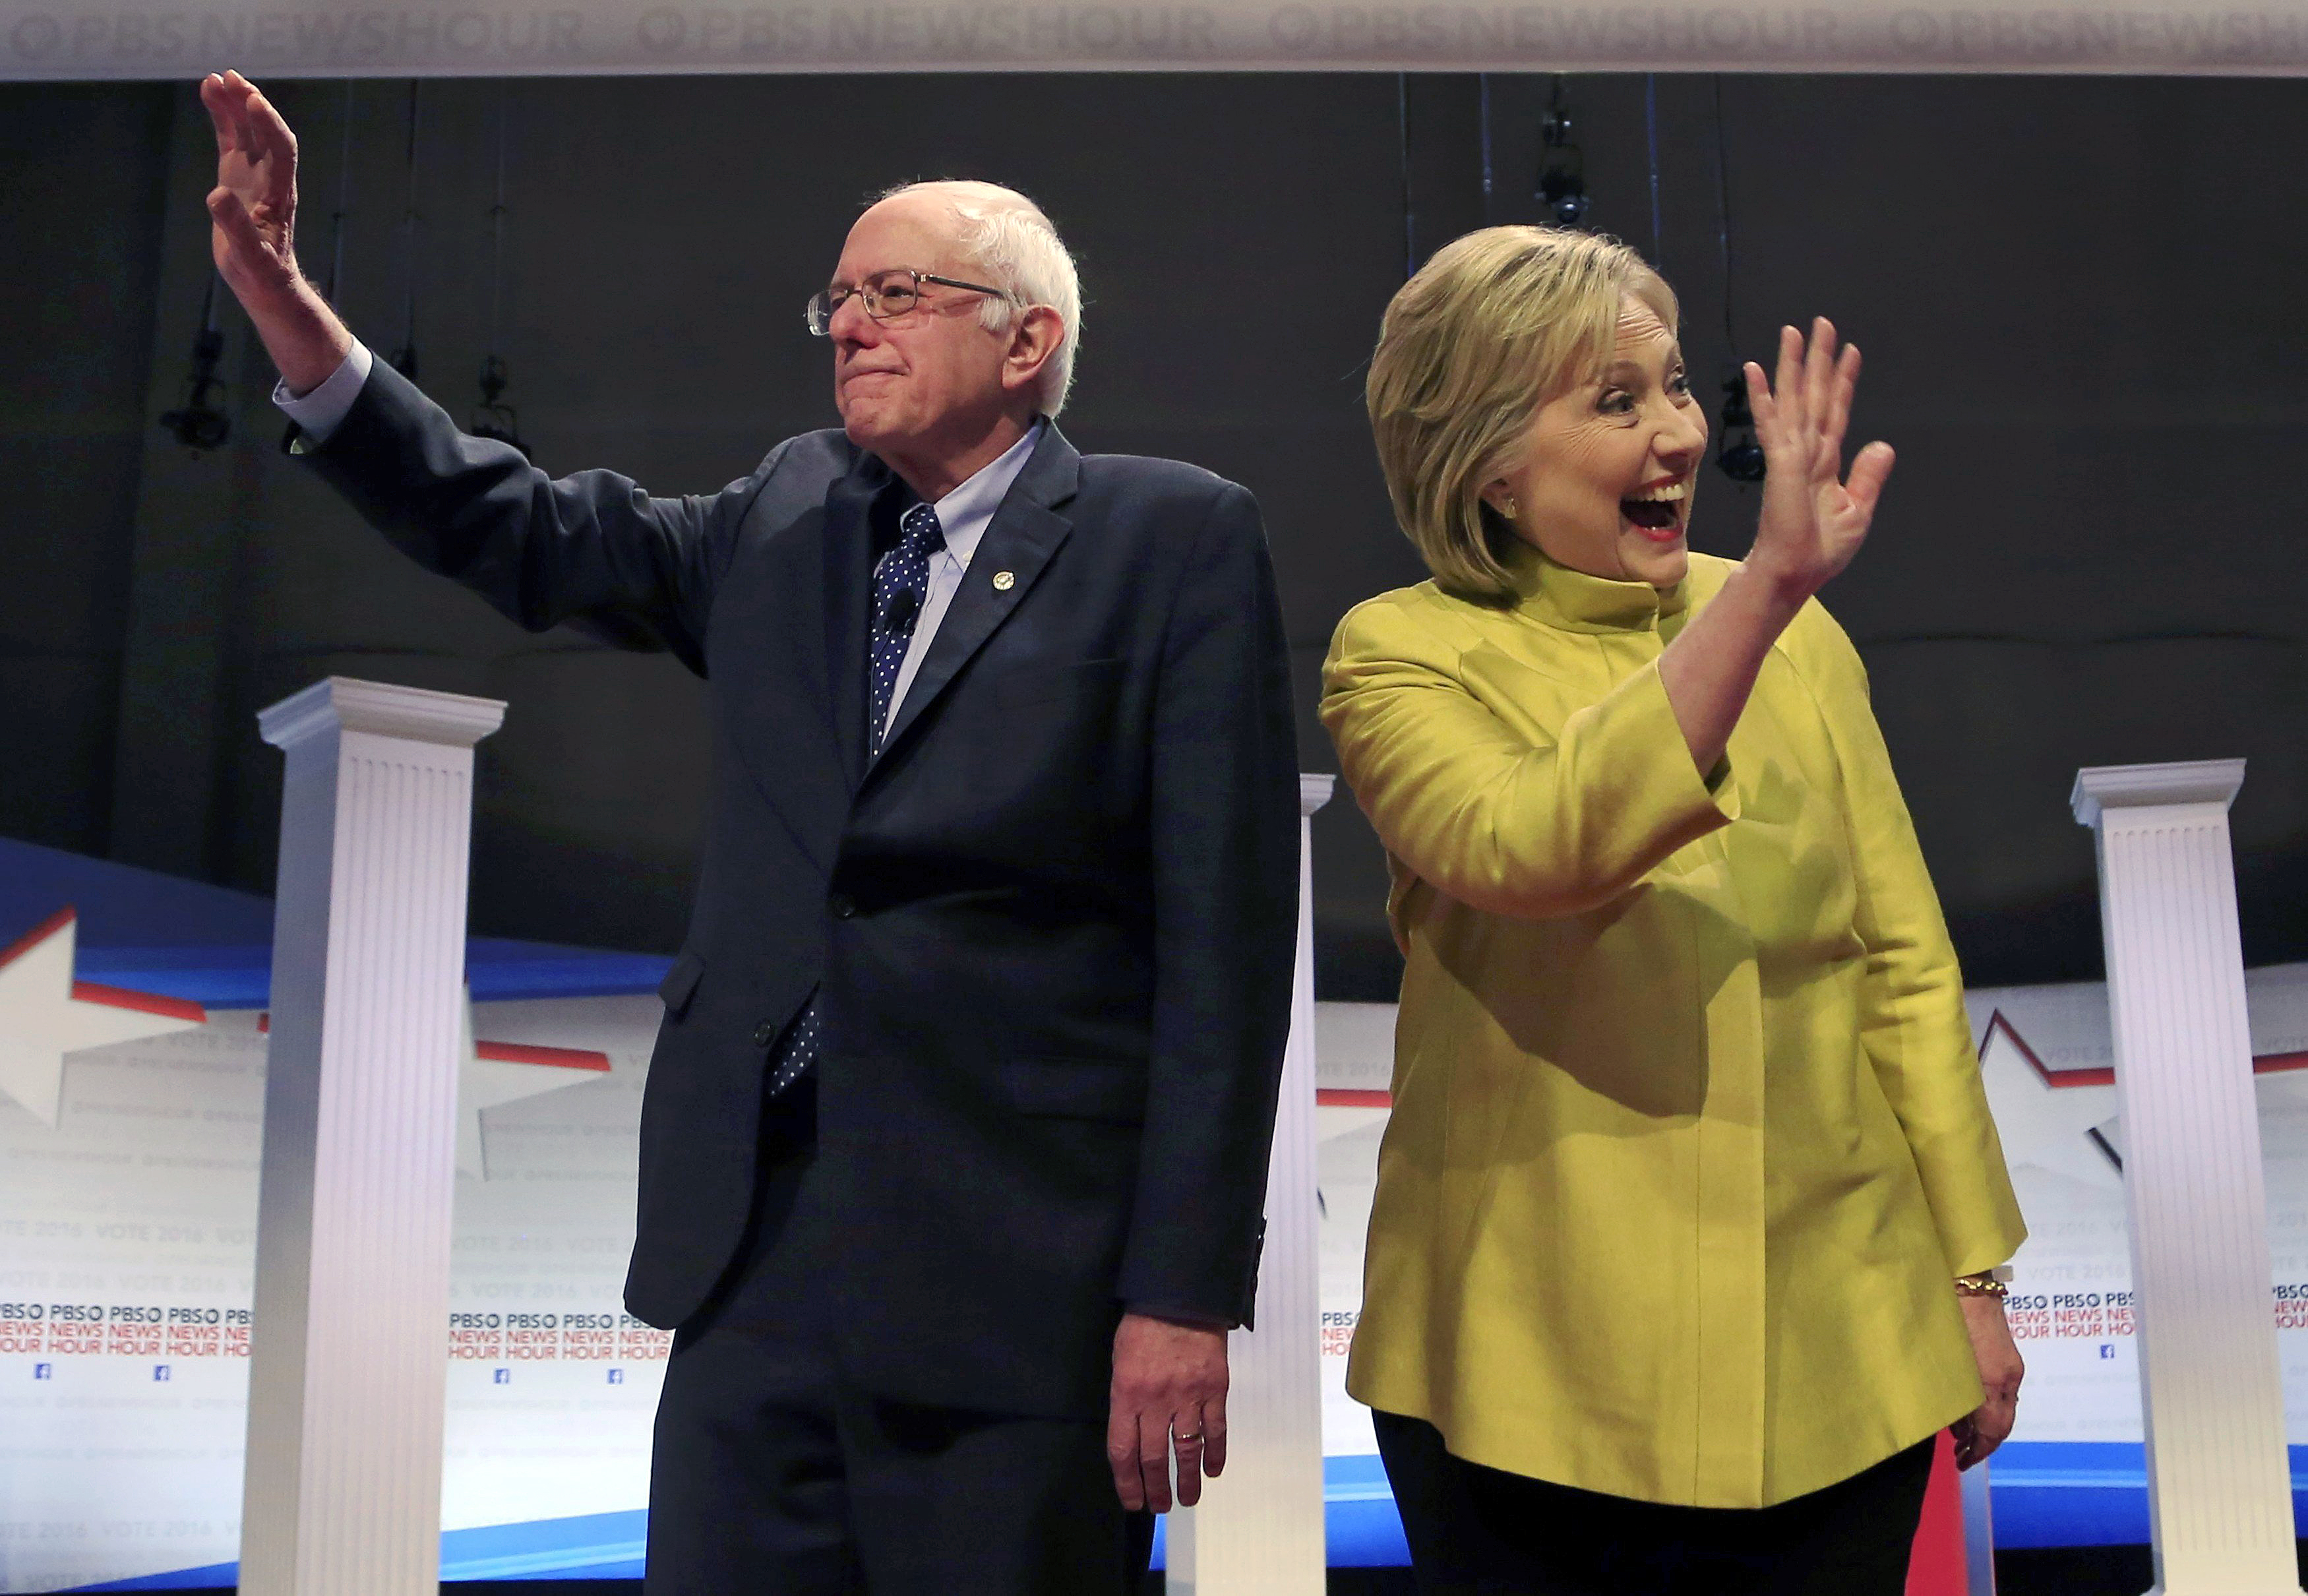 Democratic. presidential candidates Senator Bernie Sanders and former Secretary of State Hillary Clinton on stage at a debate in Milwaukee on Feb. 11, 2016.